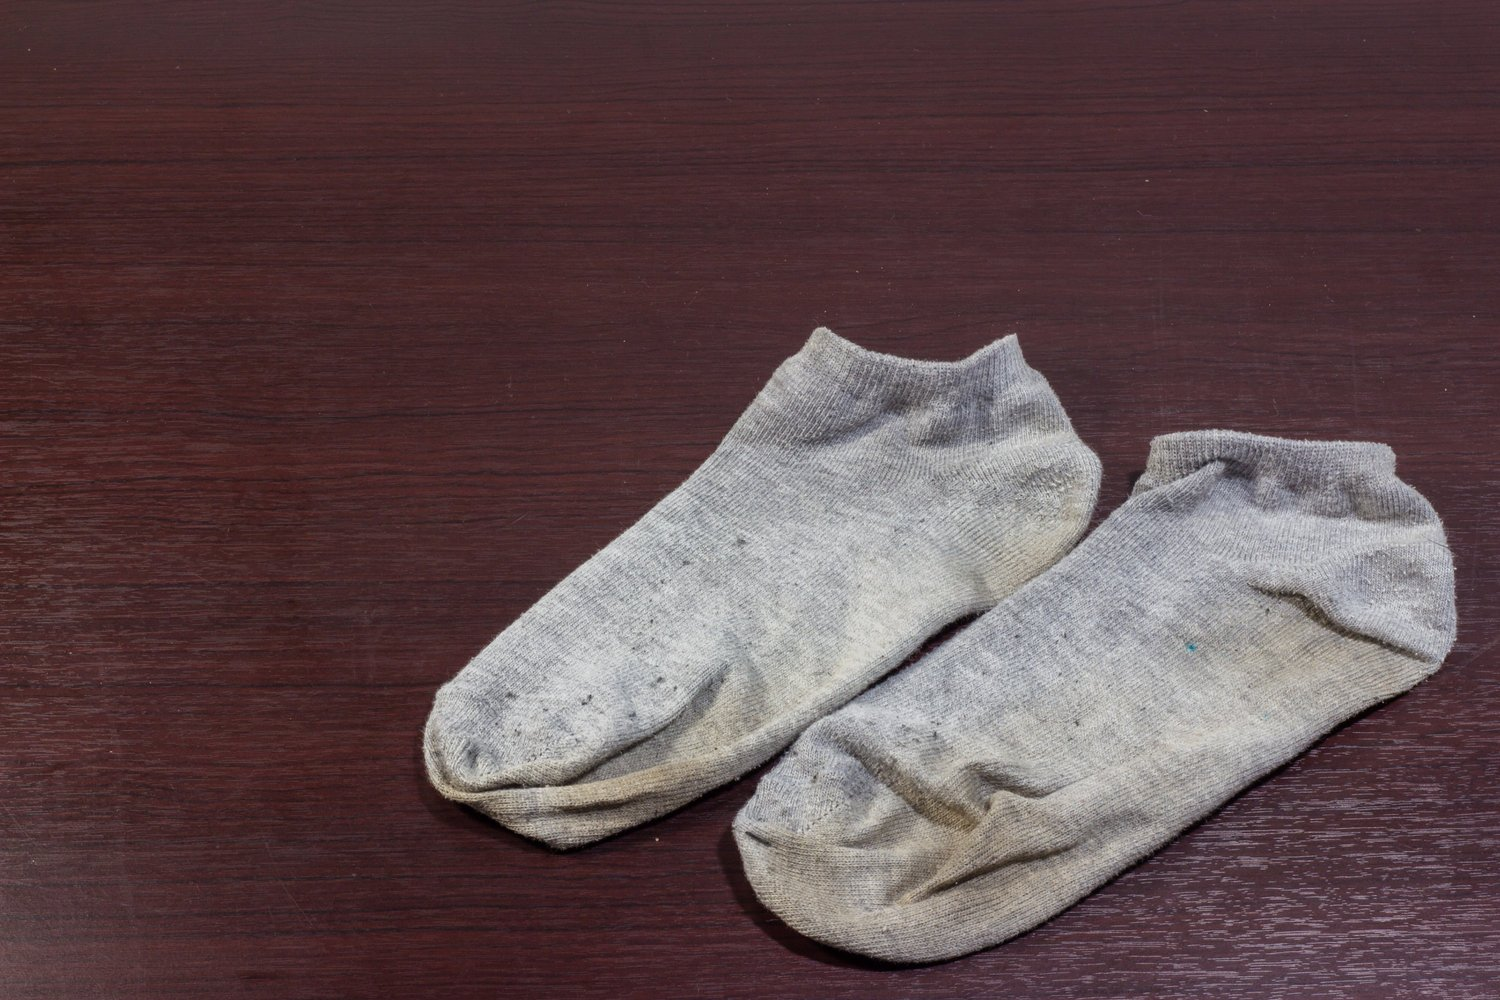 Can You Really Get Sick from Smelling Dirty Socks?